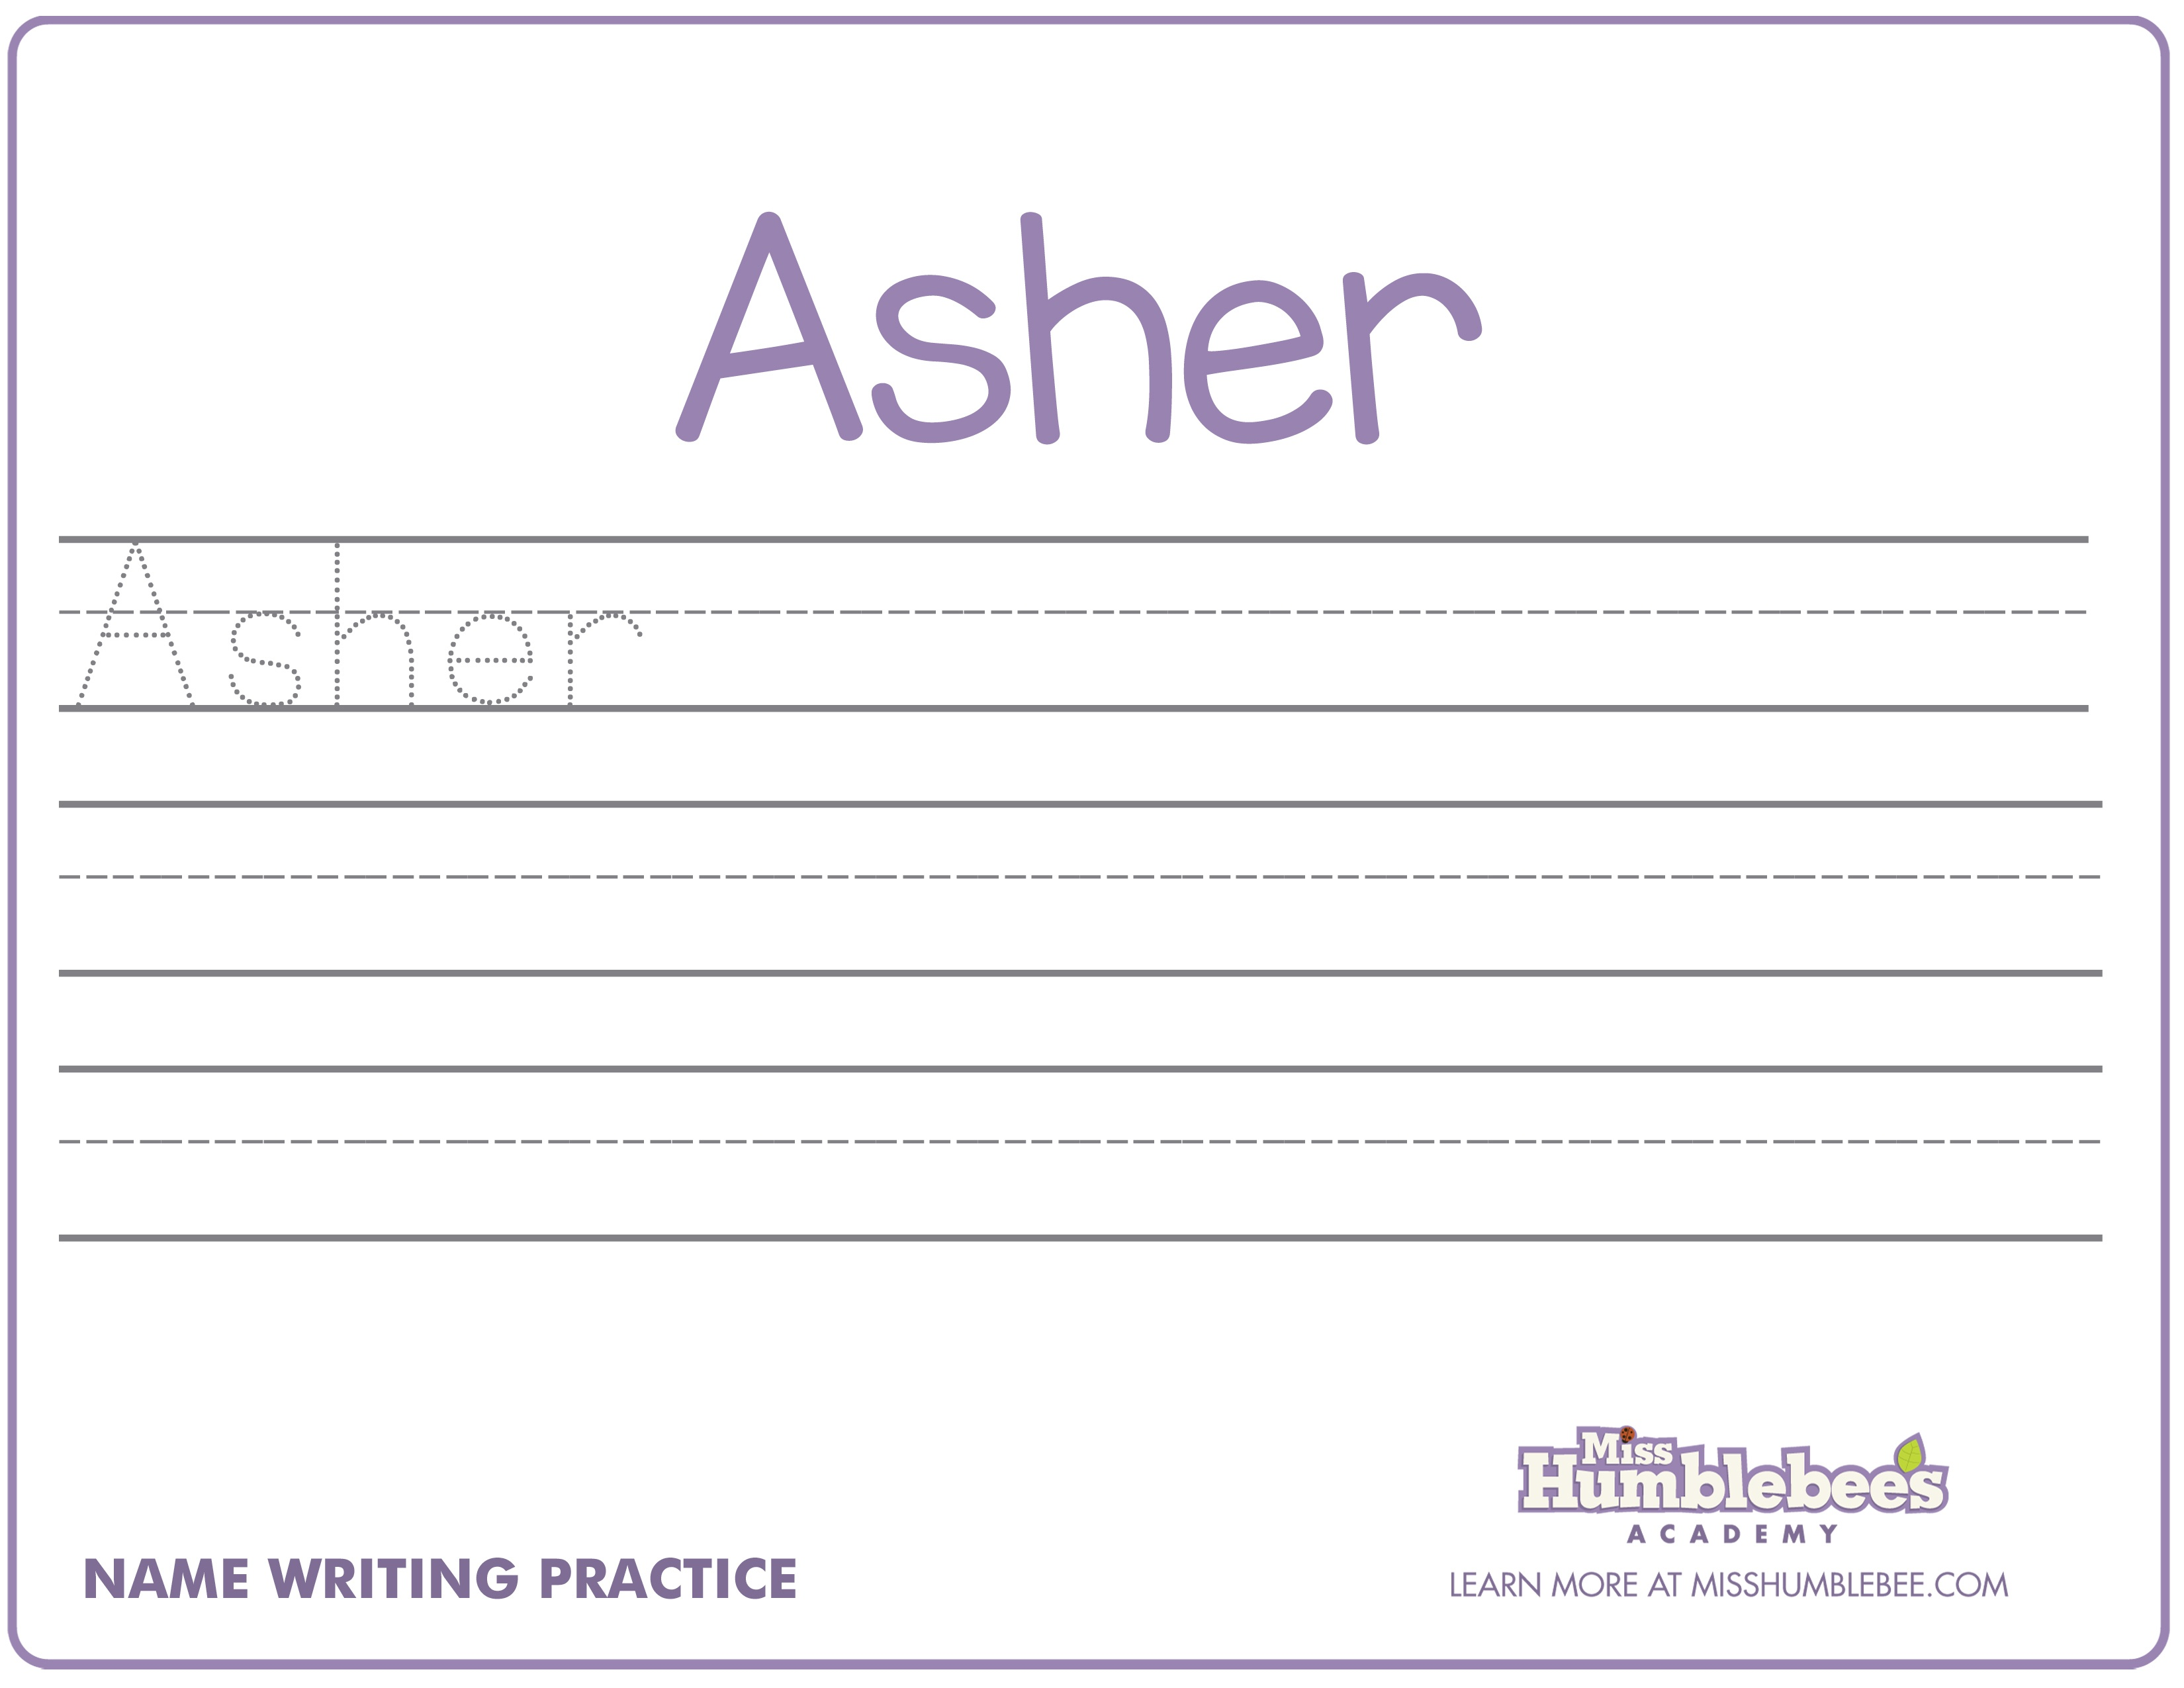 Does It Matter If A Child Is Left- Or Right-Handed? - Free Printable Left Handed Worksheets